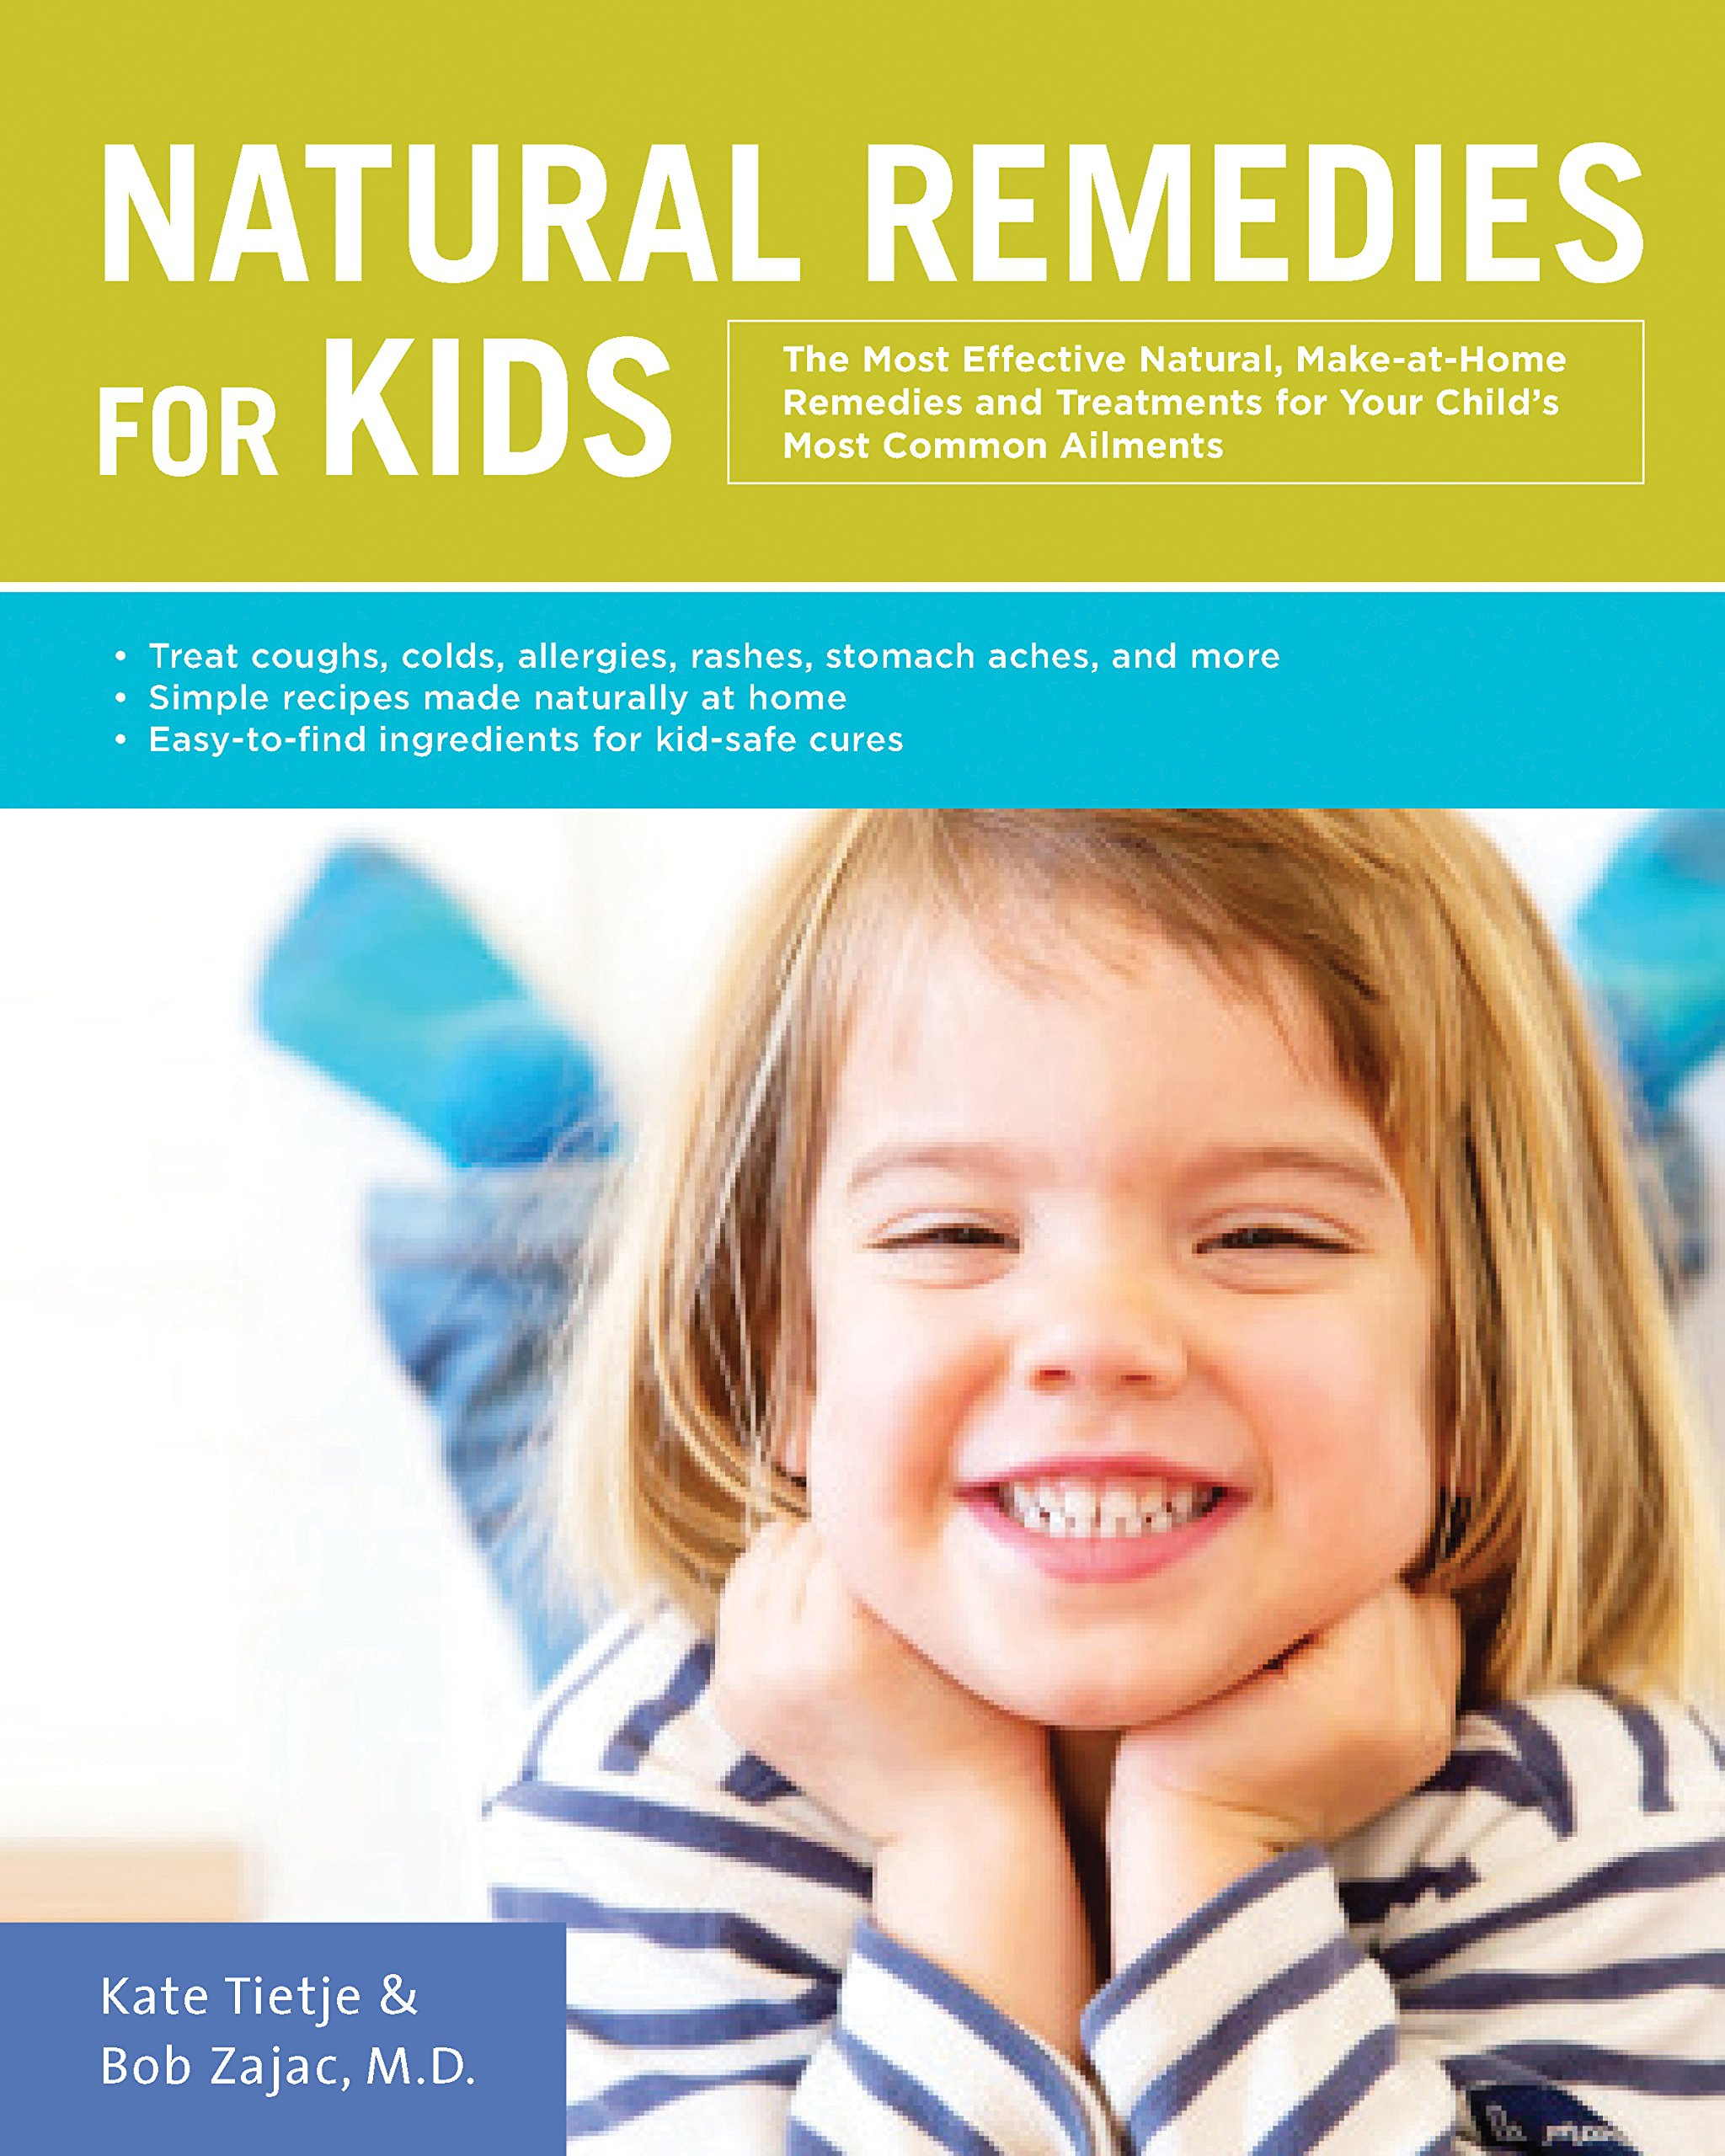 Top 10 Kids Ailments Top 10 Kids Ailments new images